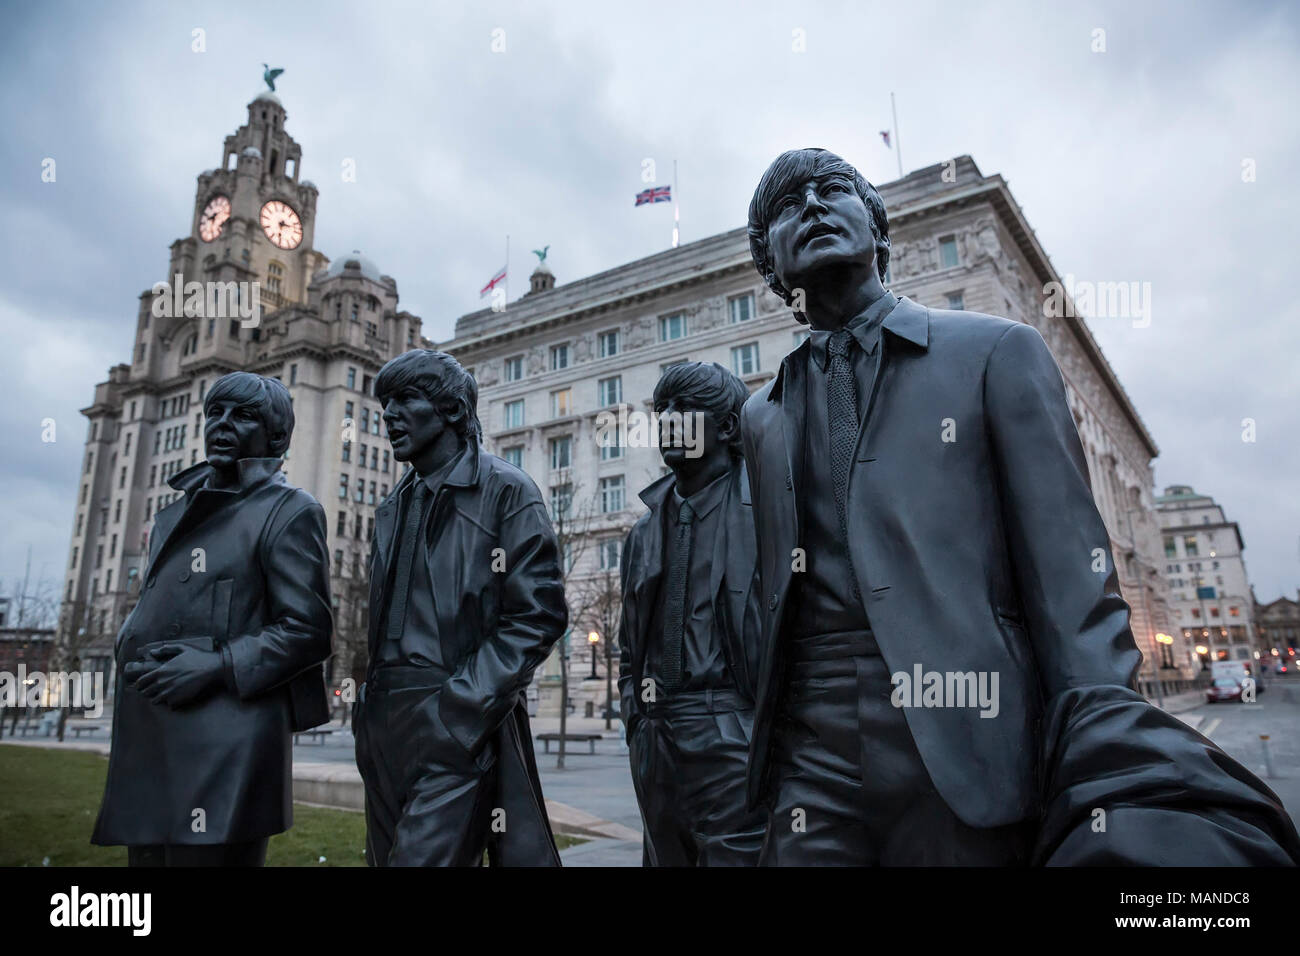 LIVERPOOL, UK - March 18, 2018 : Close up of the Beatles statues at the pier head in Liverpool with the Royal Liver Building in the background. - Stock Image